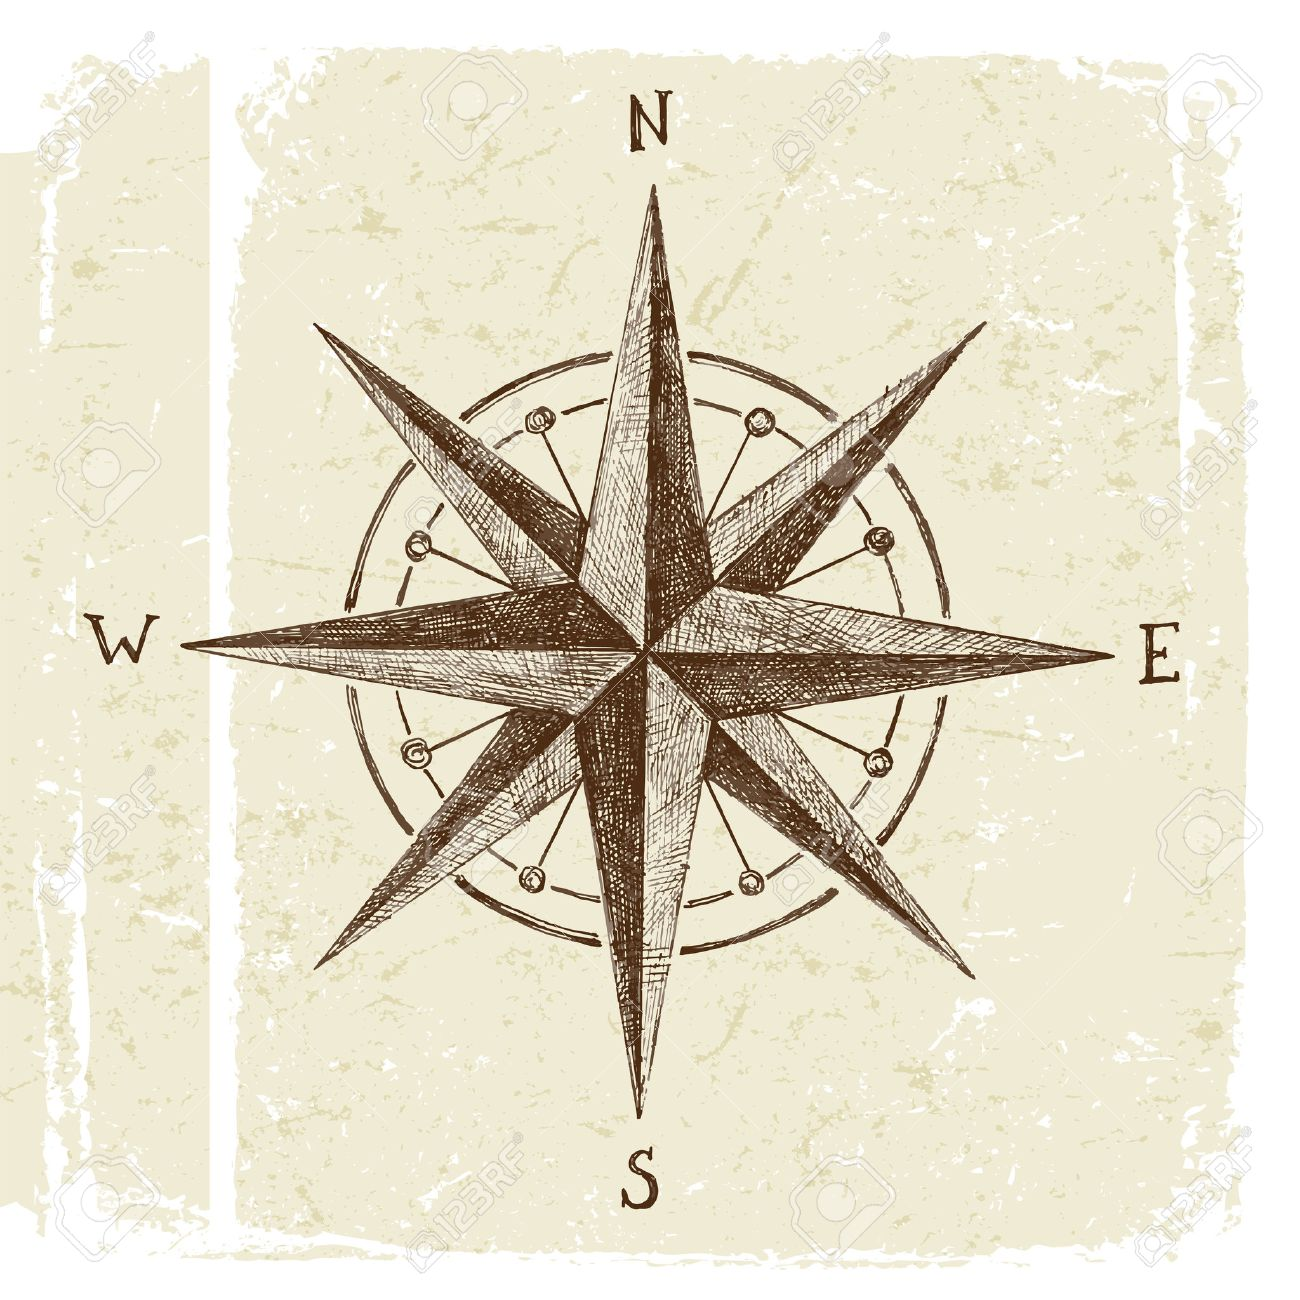 hand drawn wind rose in vintage style - 48491050